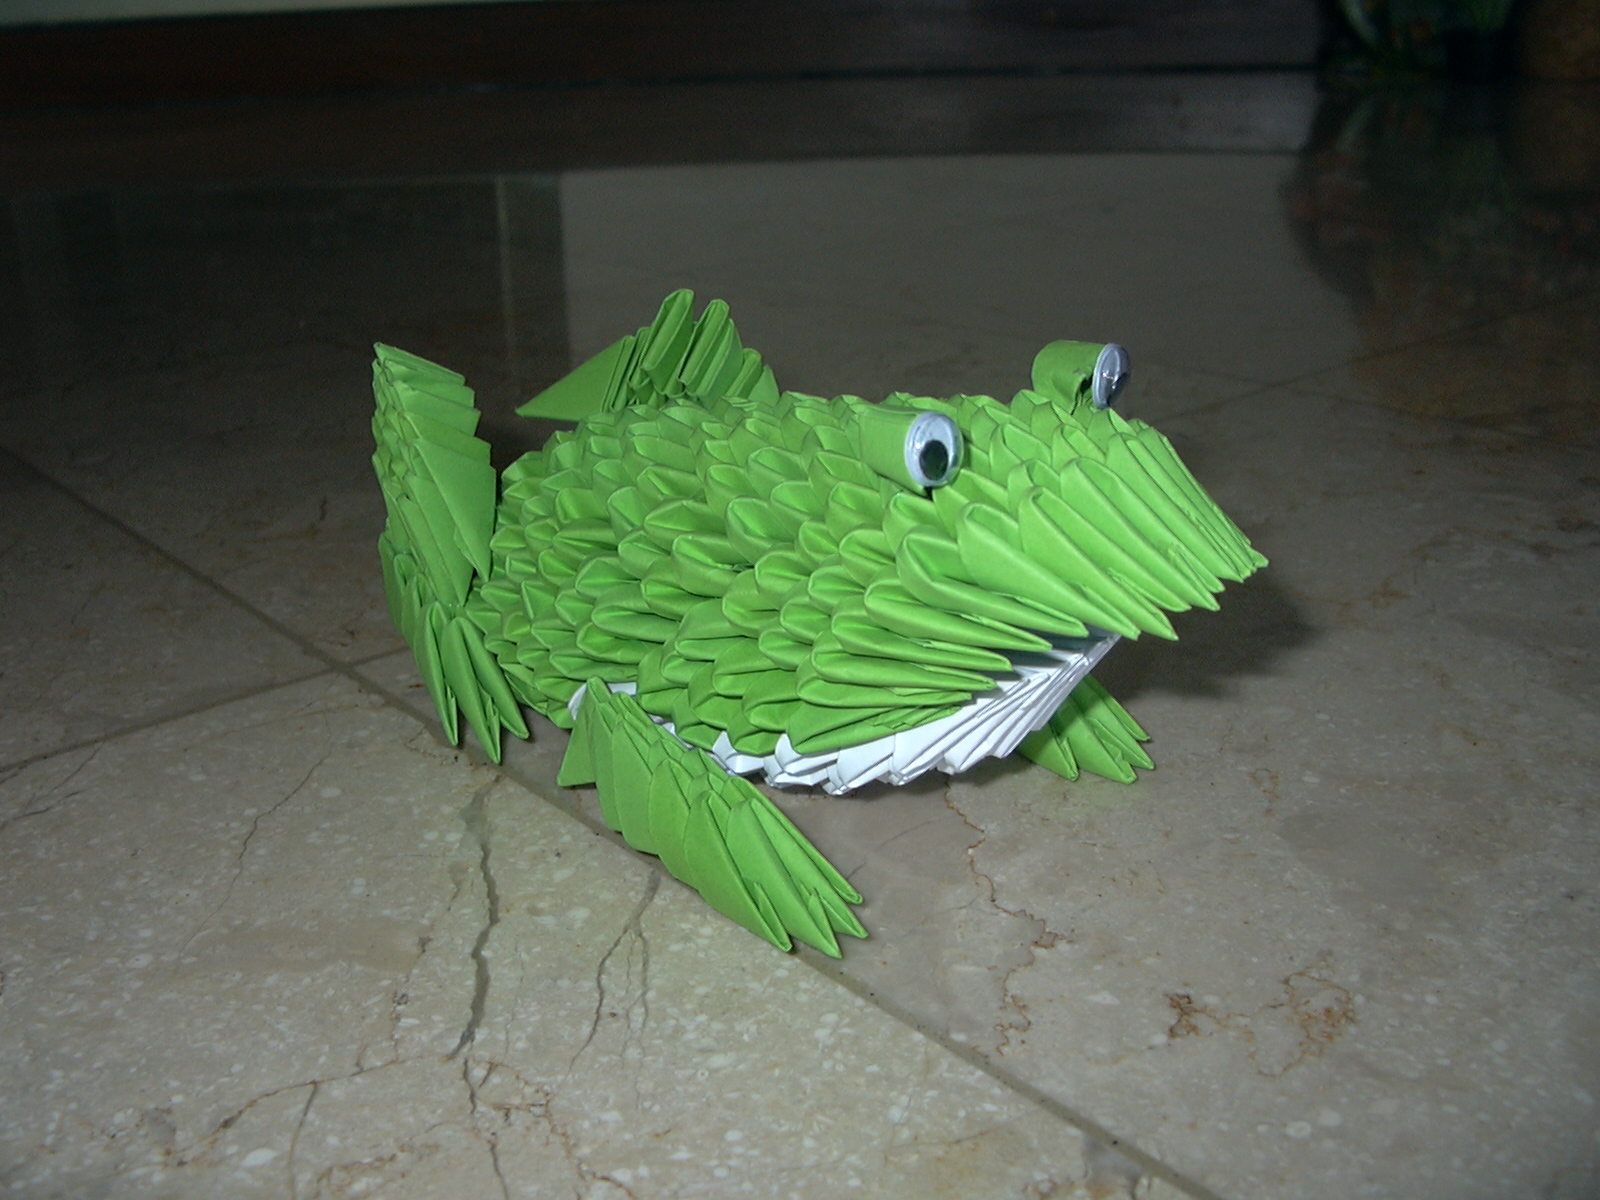 ICHANOKO 3D ORIGAMI INDONESIA: Model 3d origami - ANIMALS - photo#29